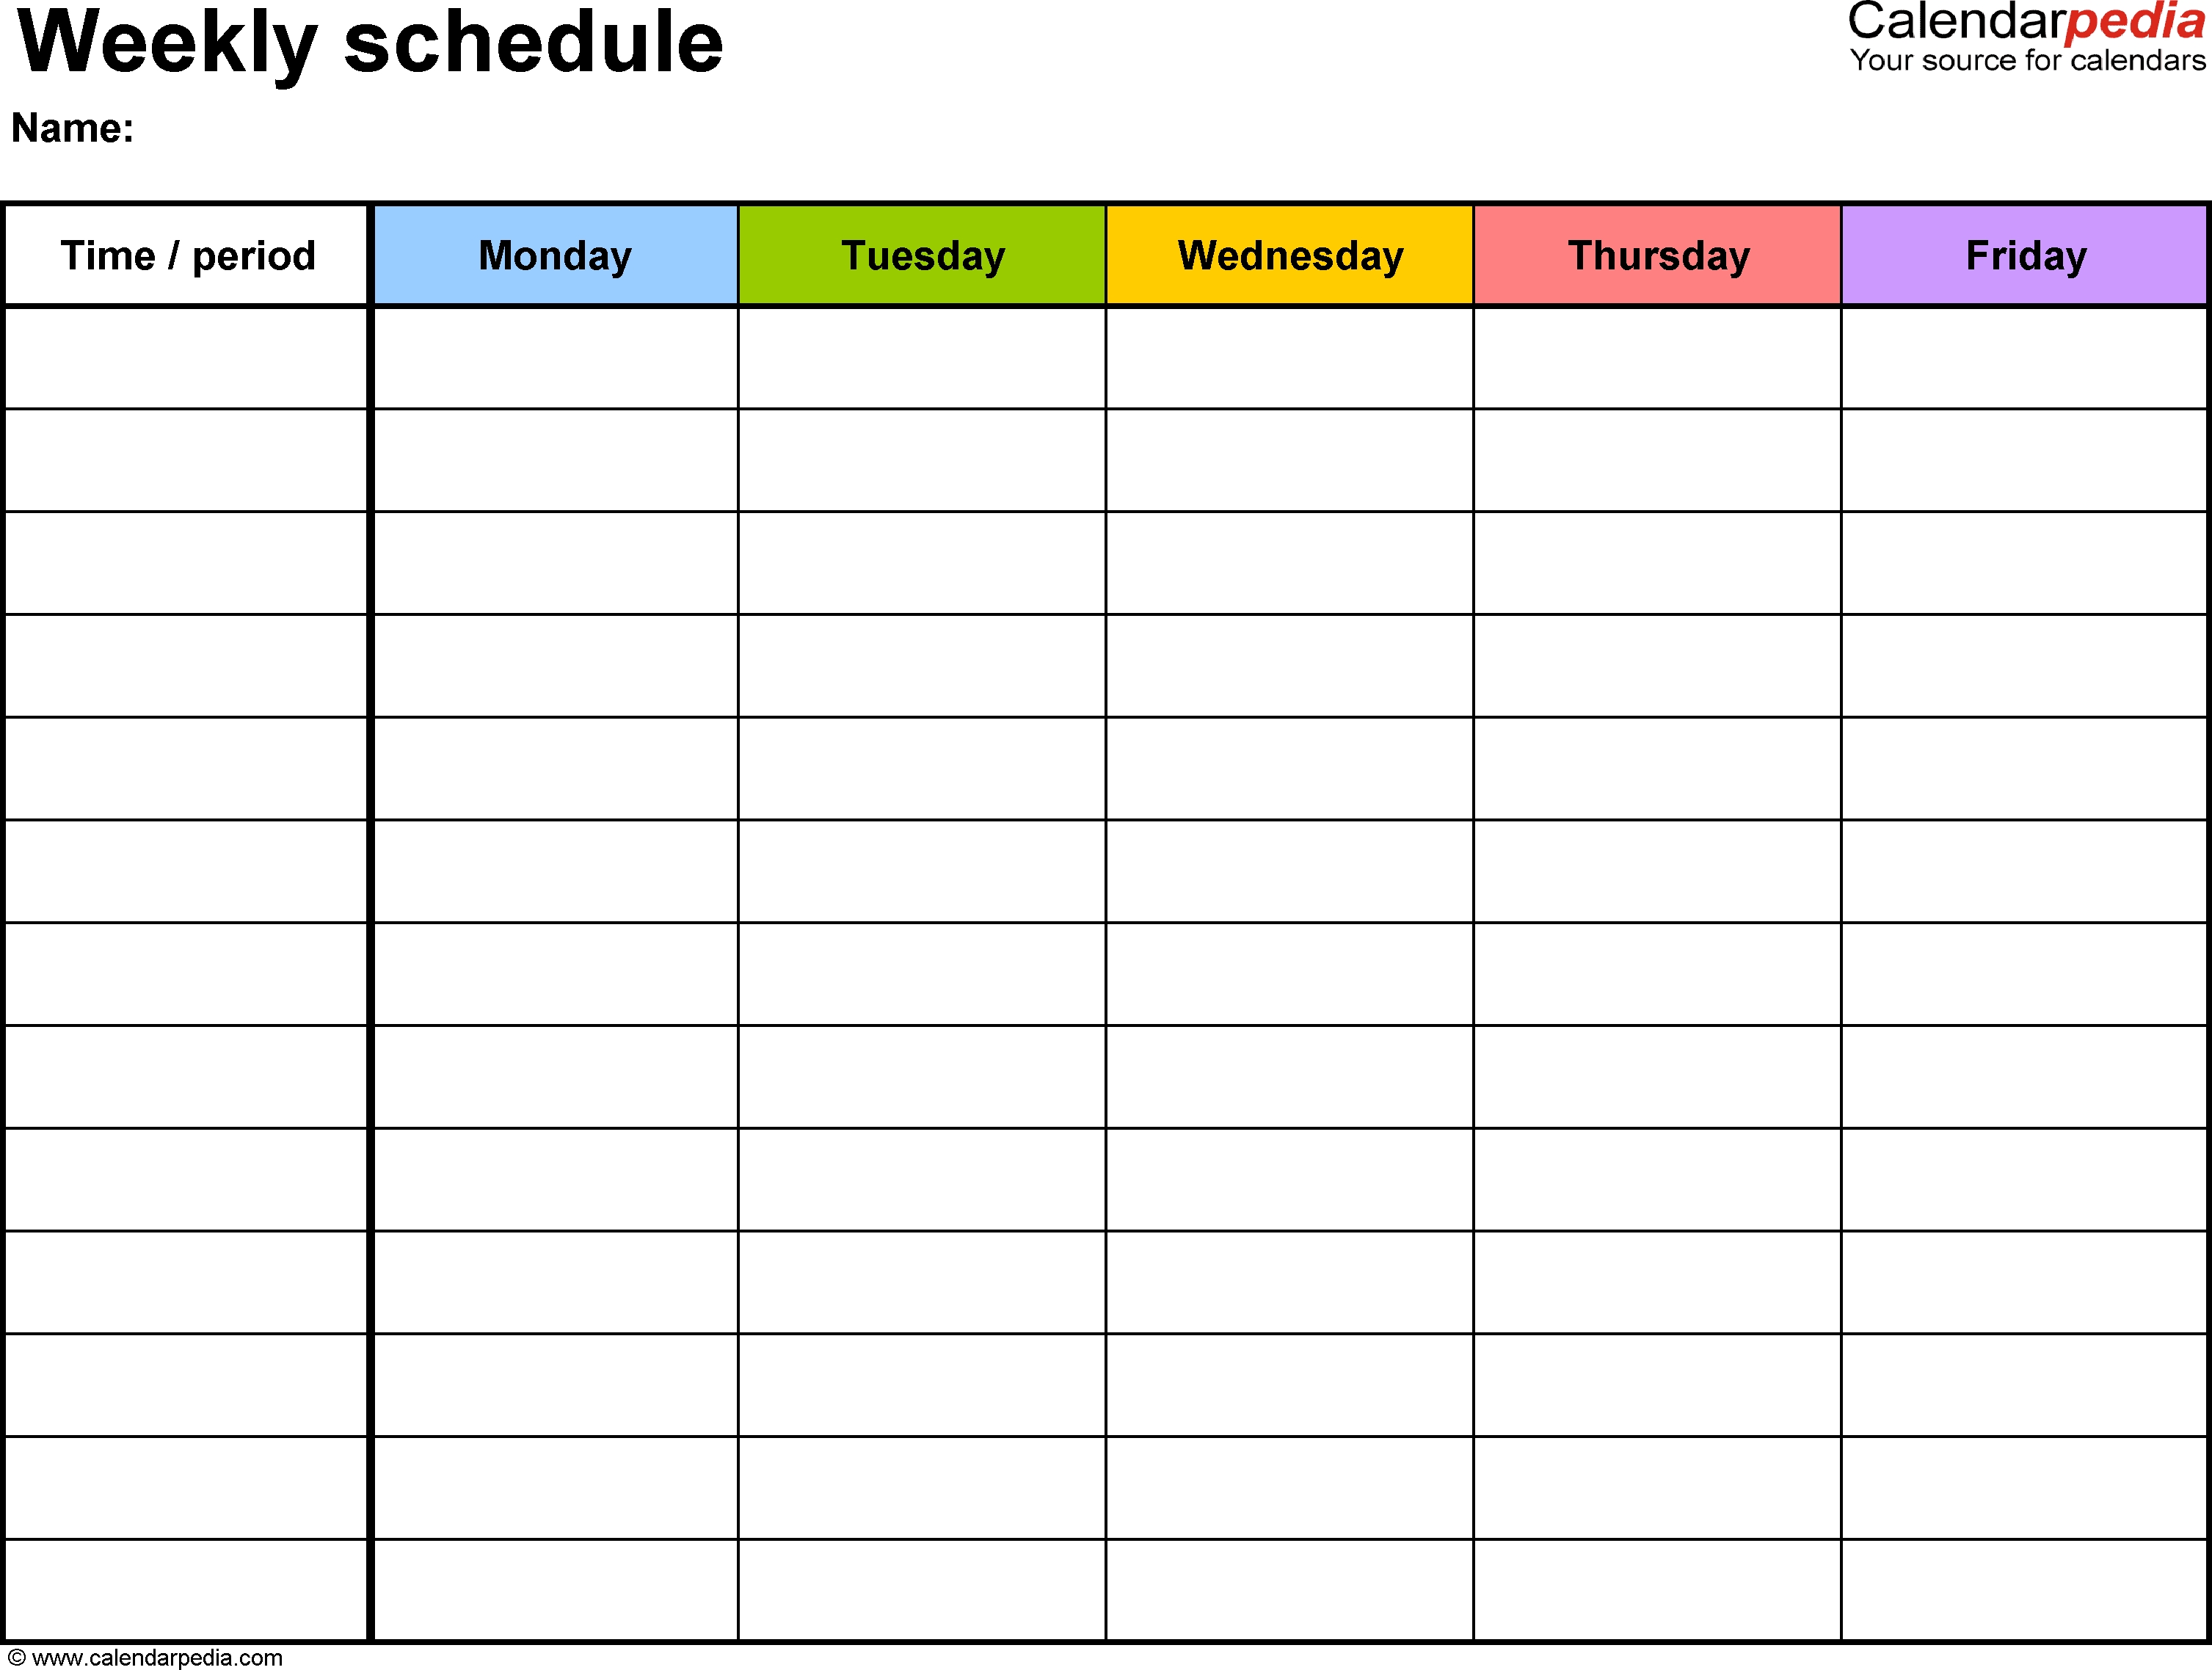 Free Weekly Schedule Templates For Excel - 18 Templates  12 Month Calendar With Room For Notes